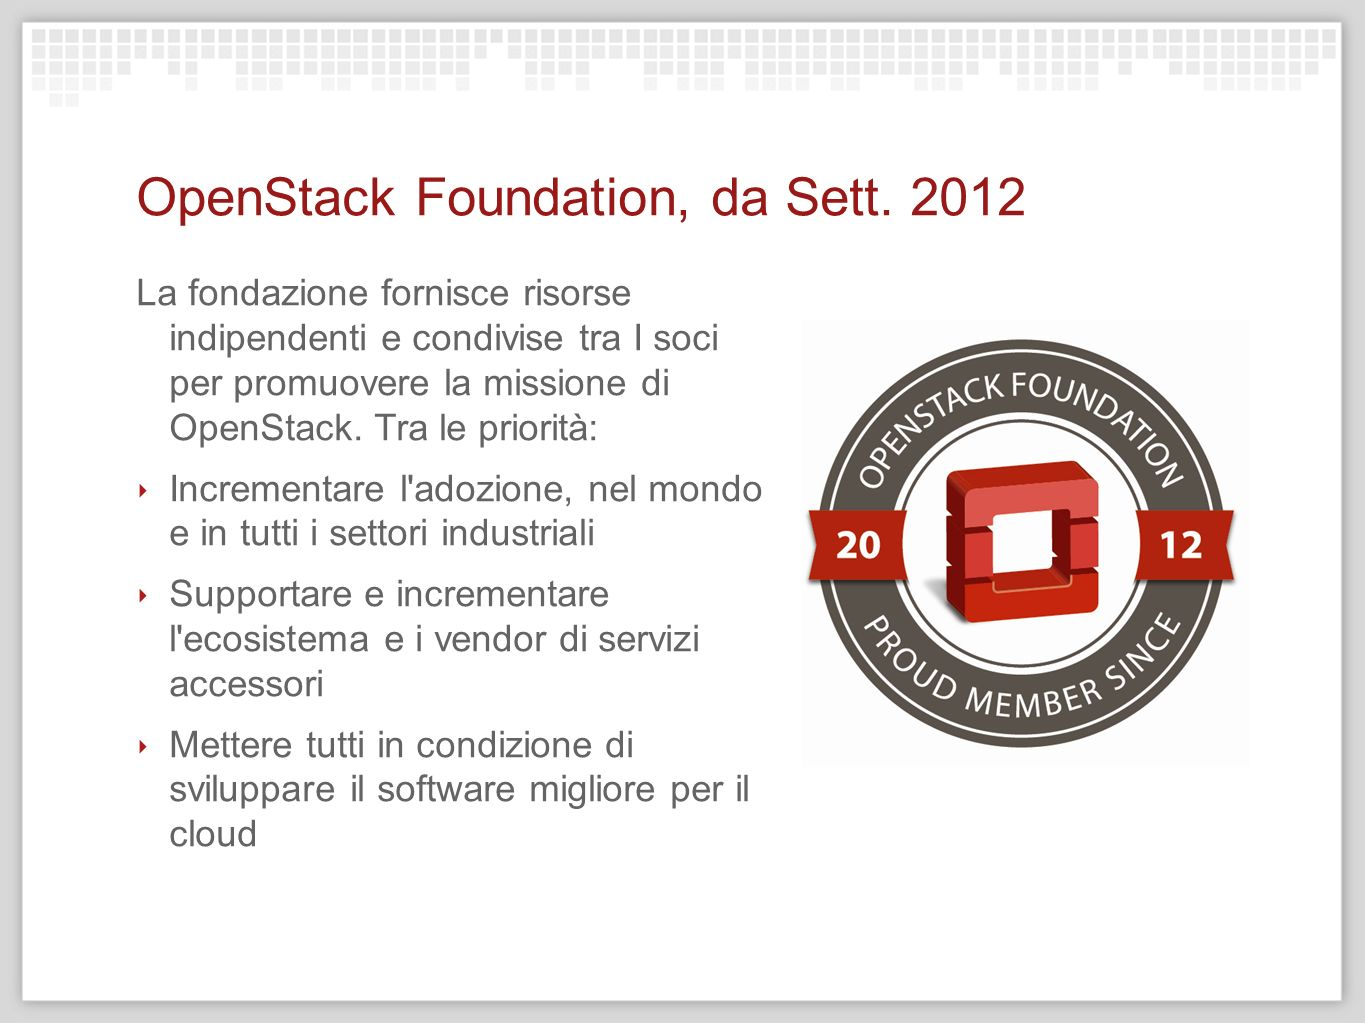 OpenStack Foundation, da Sett. 2012